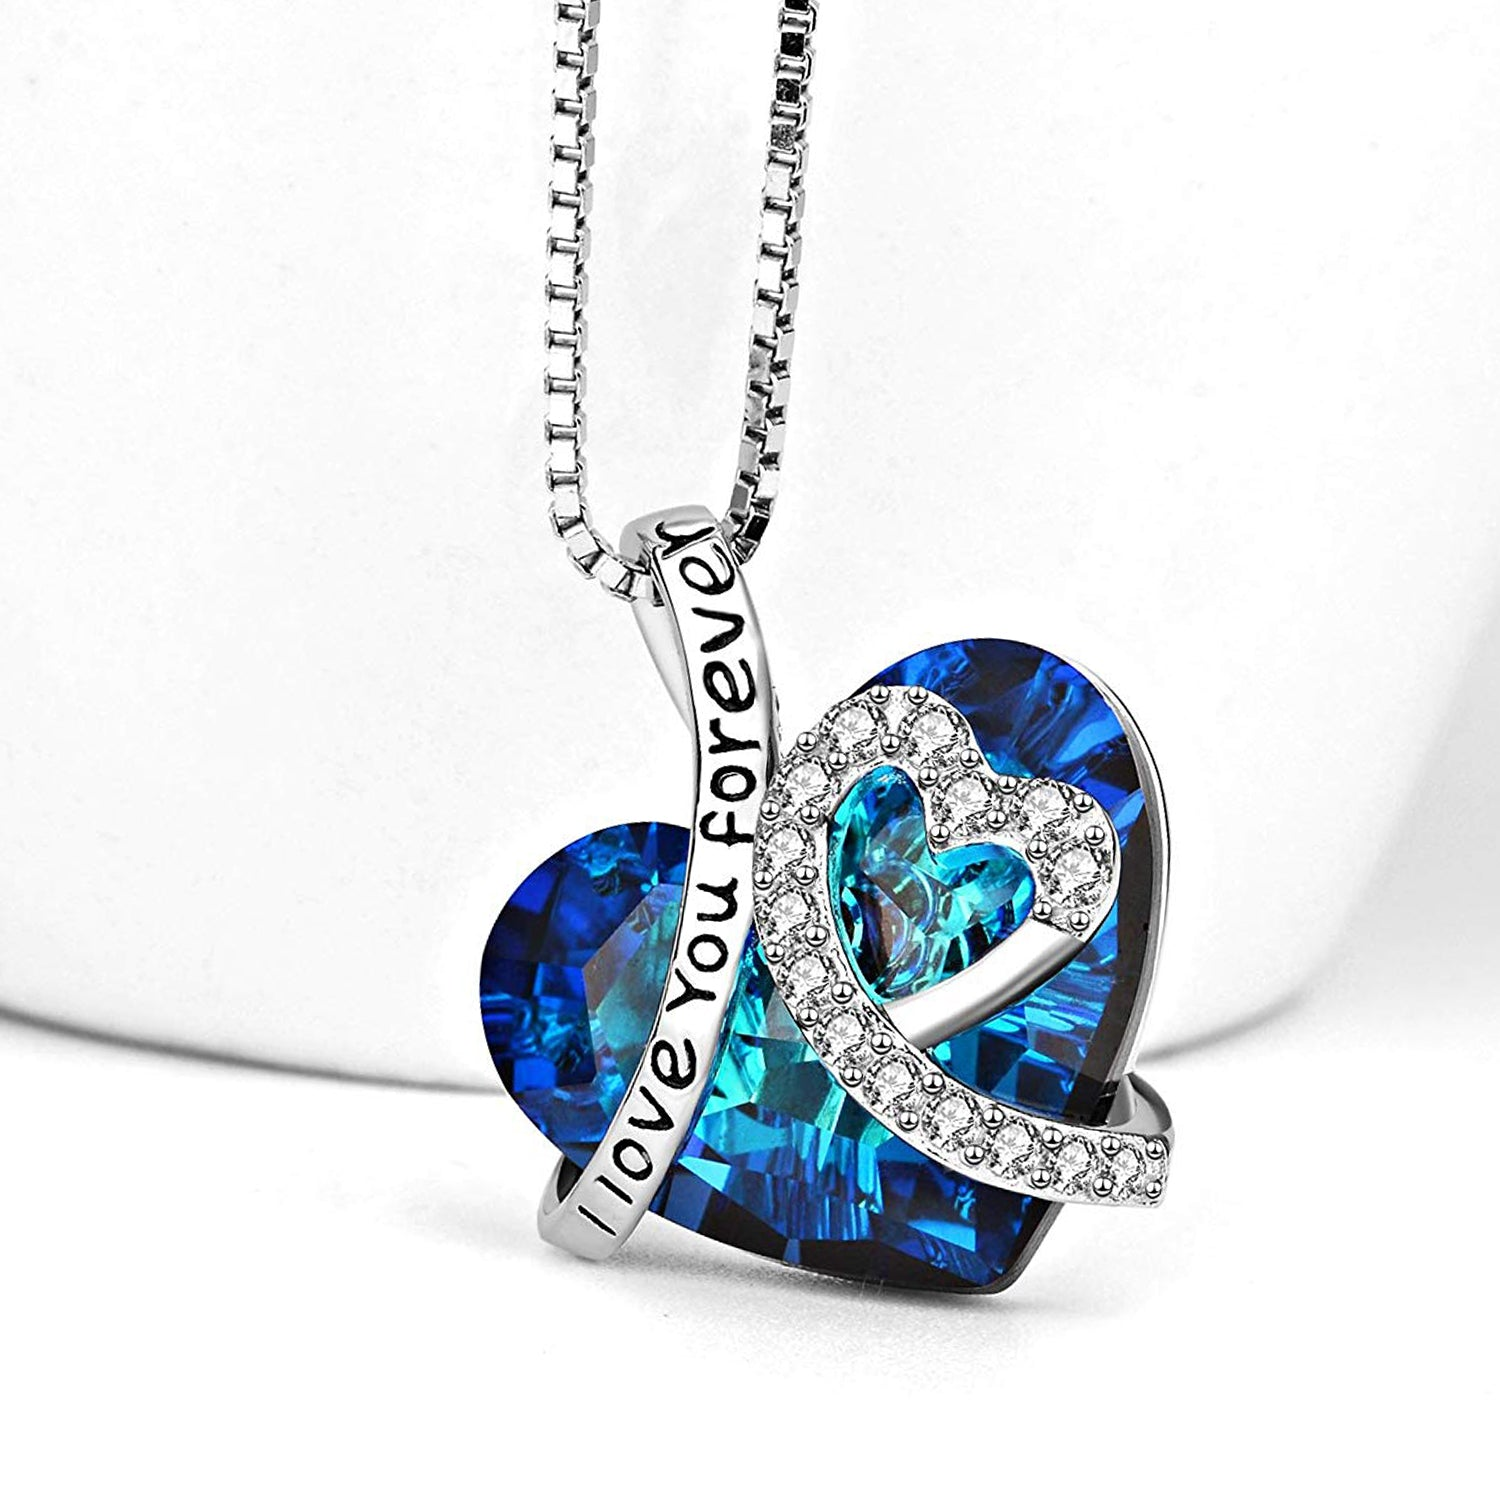 8148935bc0c8d I LOVE YOU FOREVER Blue Swarovski Crystal Heart Necklace in 18K White Gold  Plated